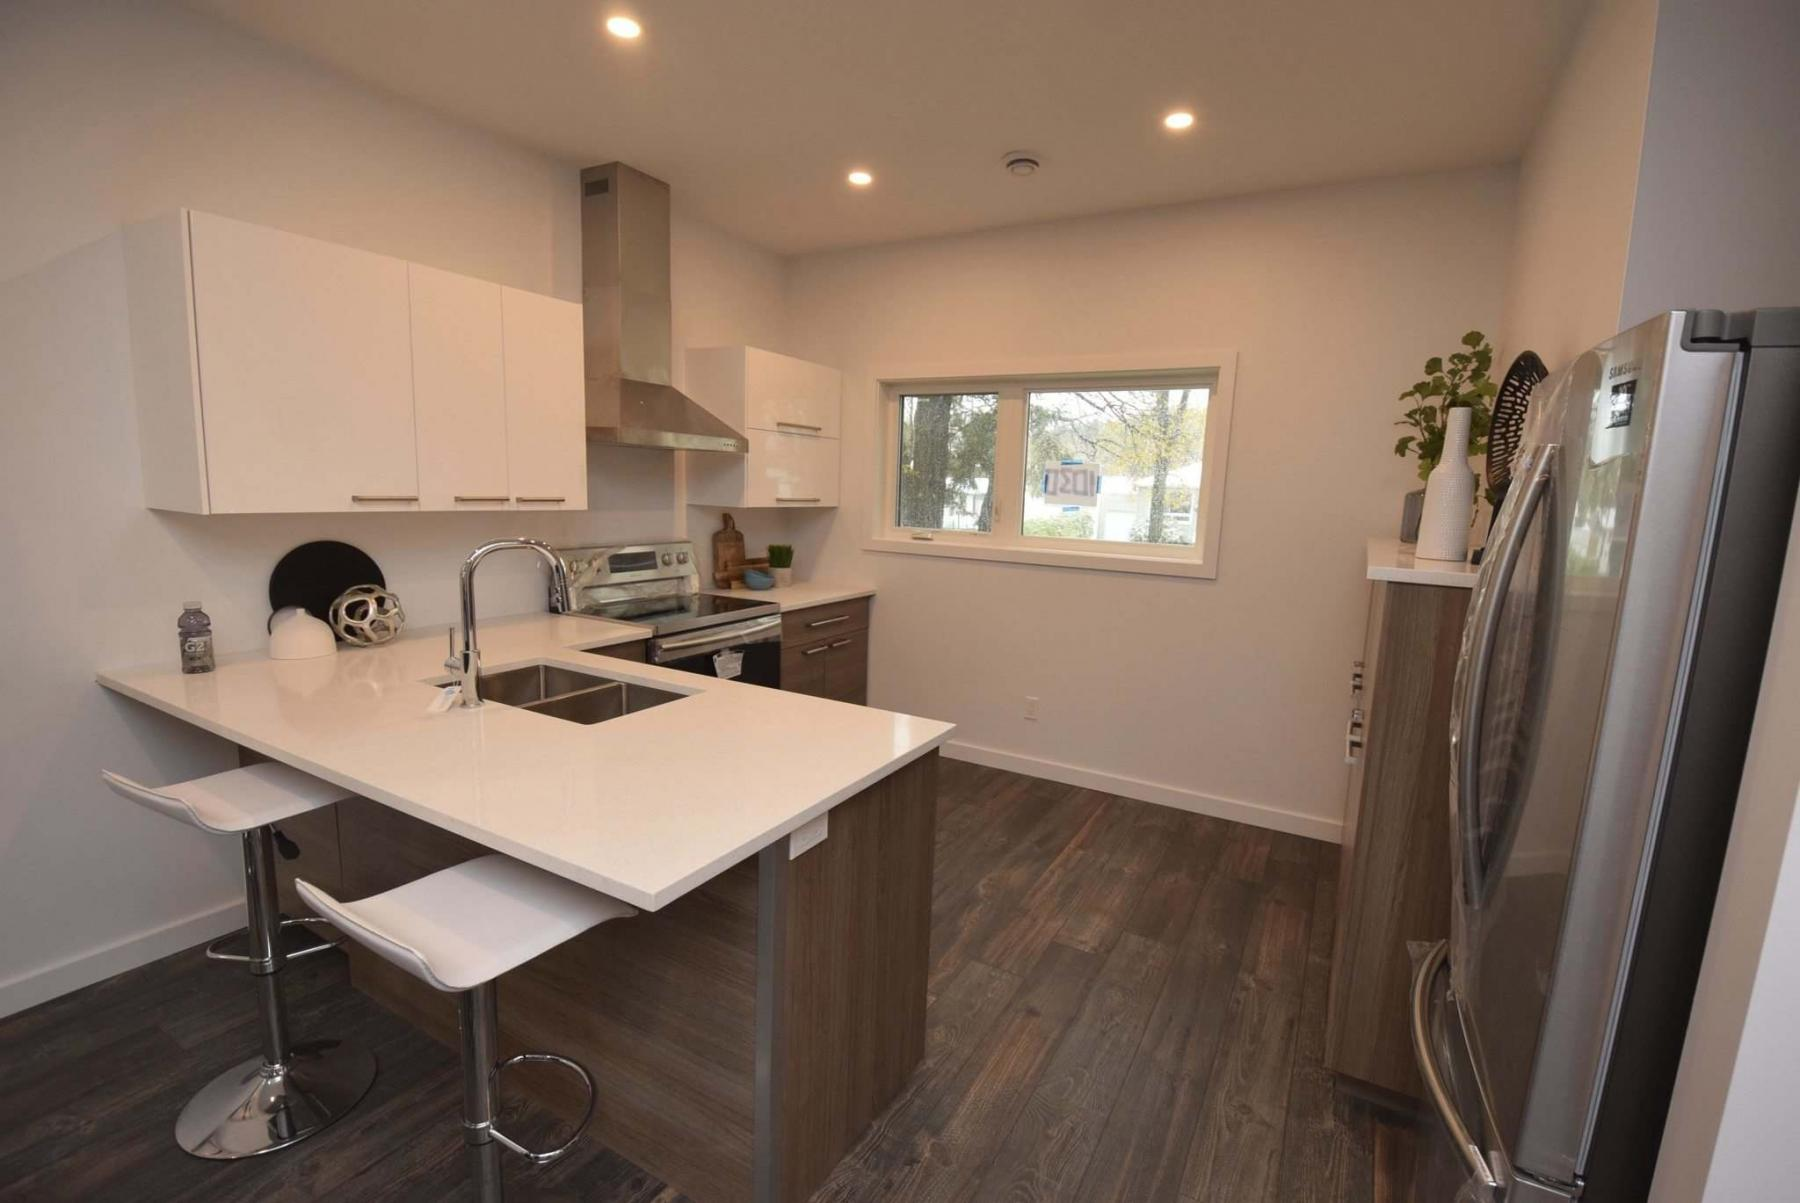 <p>TODD LEWYS / WINNIPEG FREE PRESS</p><p>The kitchen of the SUD Homes infill at1030 Edderton Ave. in West Fort Garry features an eating nook for two to three people and 1 1/4 -inch thick quartzcountertops.</p>